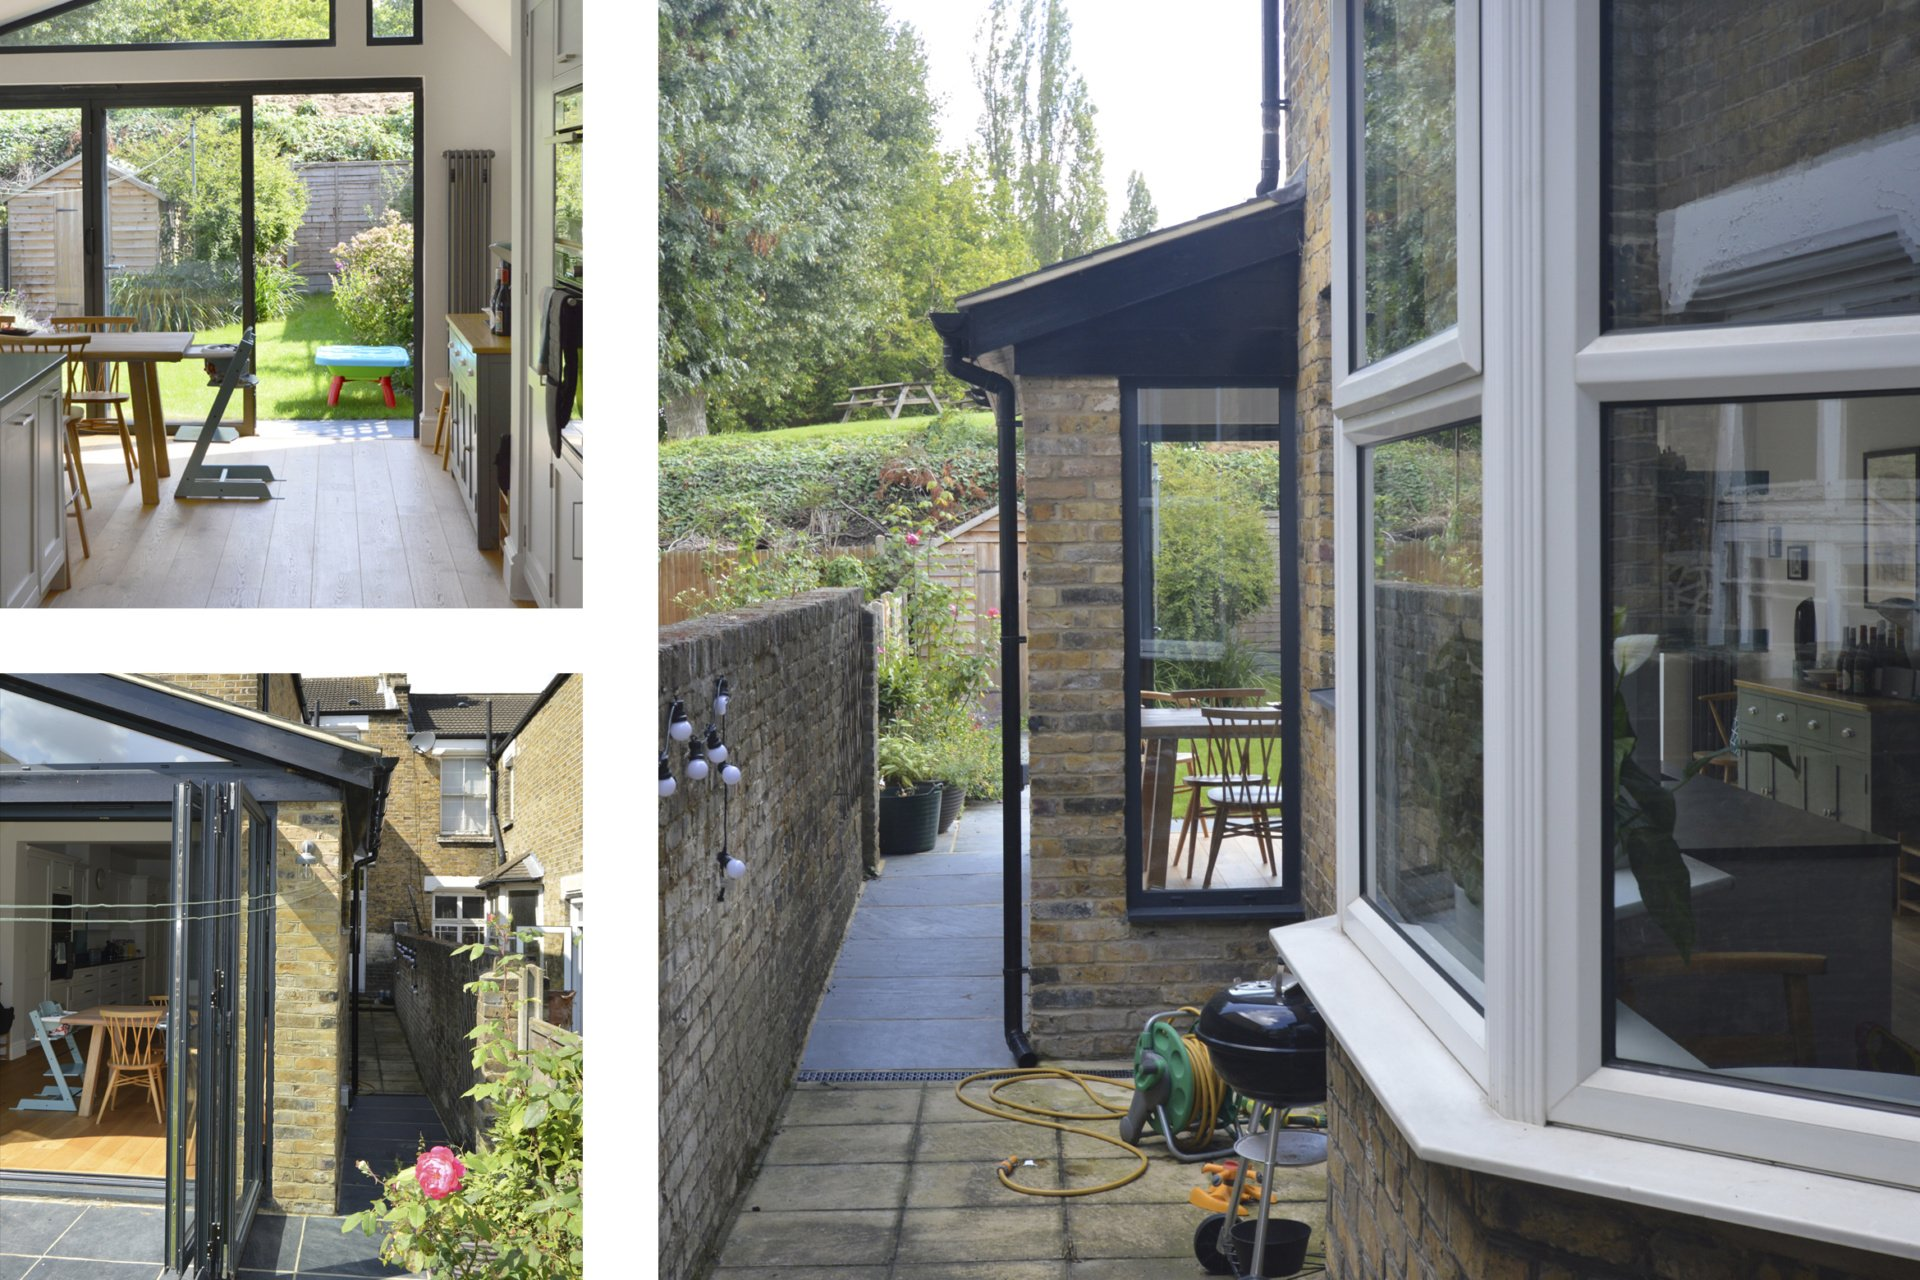 Nunhead Lewisham SE15 House kitchen extension – External views 1 Nunhead, Lewisham SE15 | House kitchen extension